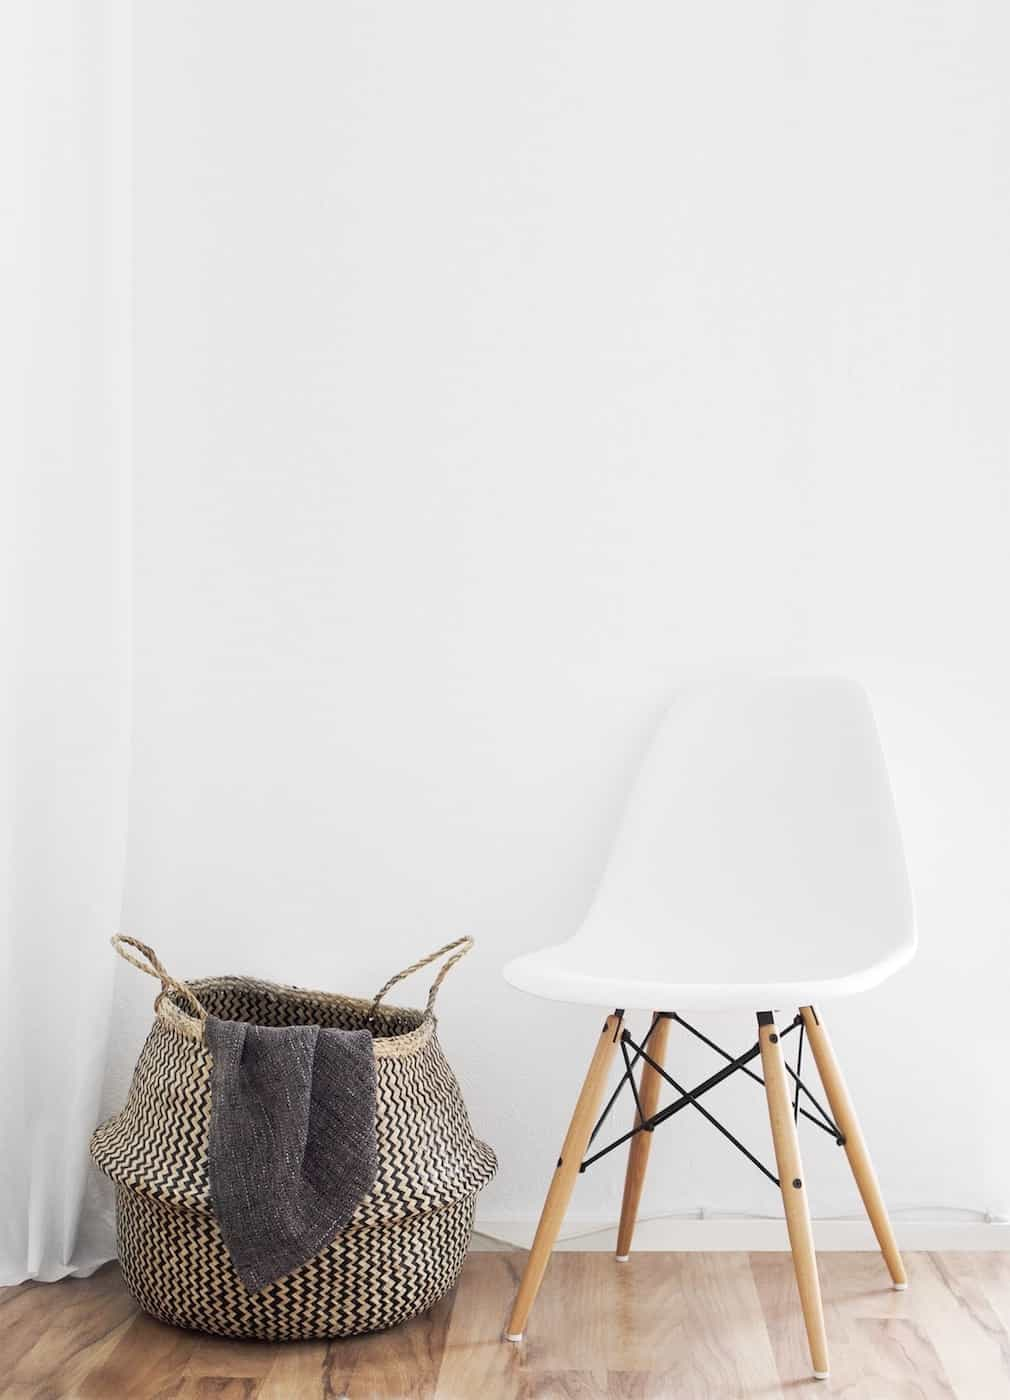 a white chair with wooden legs next to a wicker basket against a stark white wall